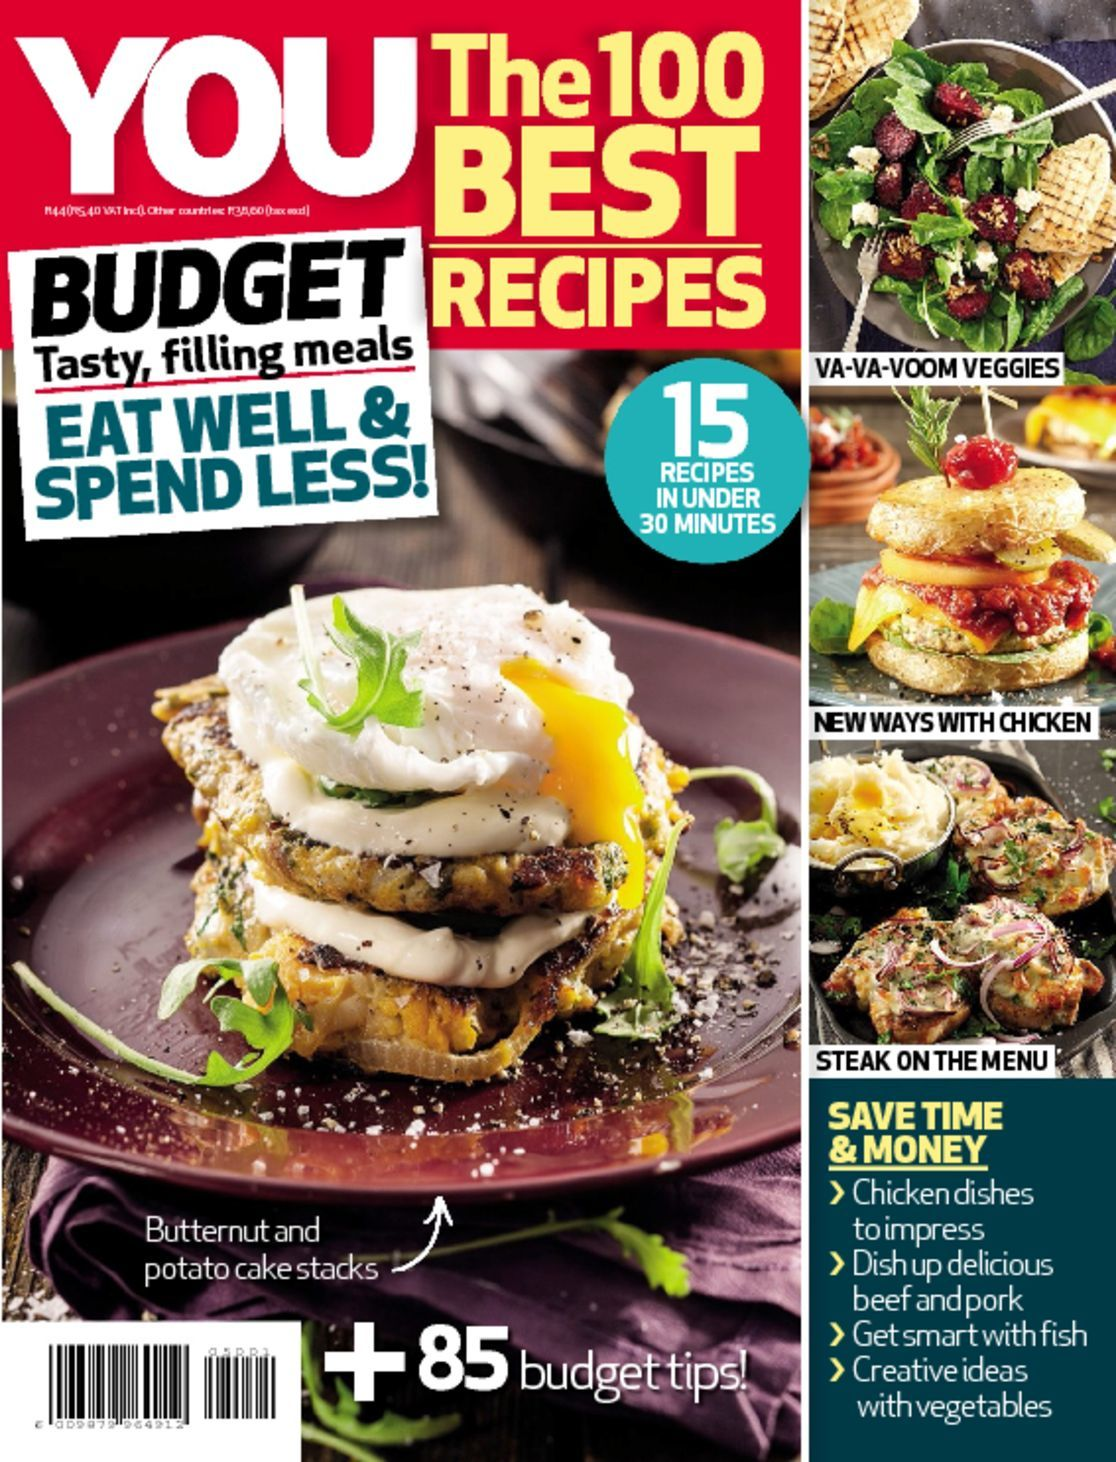 YOU The 100 Best Recipes Budget Digital